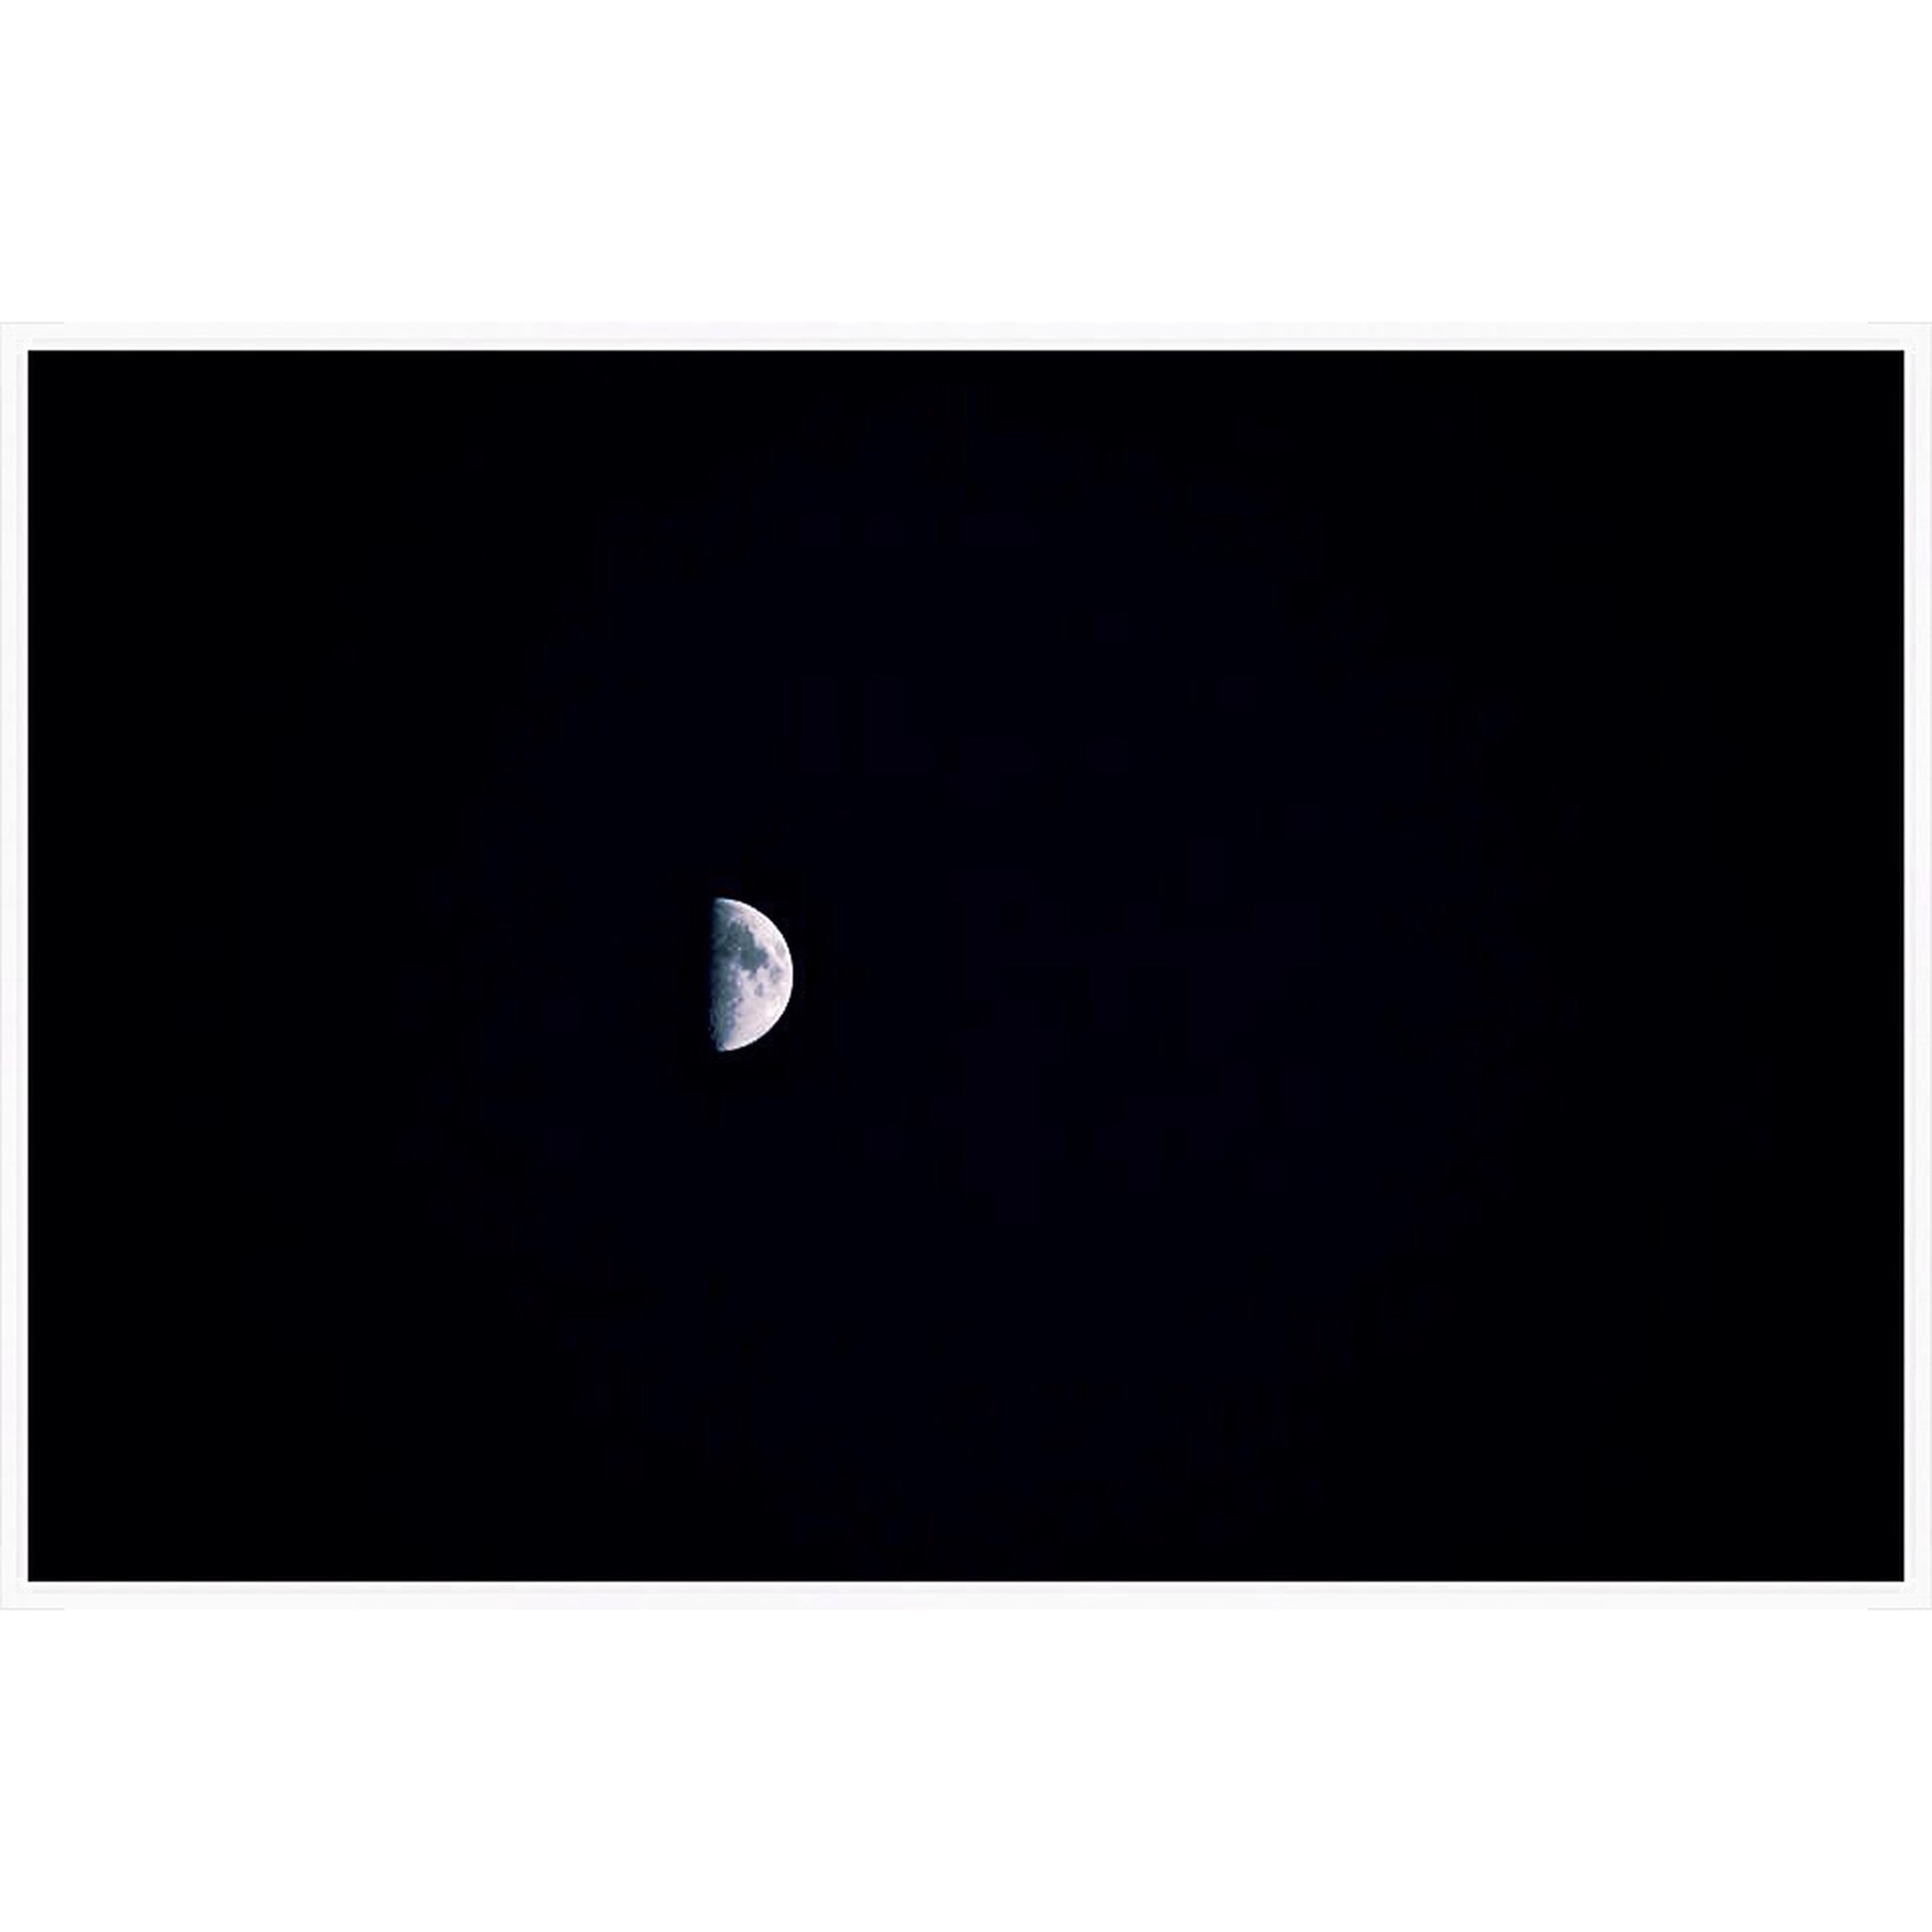 transfer print, moon, auto post production filter, copy space, night, astronomy, beauty in nature, nature, clear sky, planetary moon, tranquility, full moon, tranquil scene, low angle view, dark, scenics, moon surface, no people, idyllic, outdoors